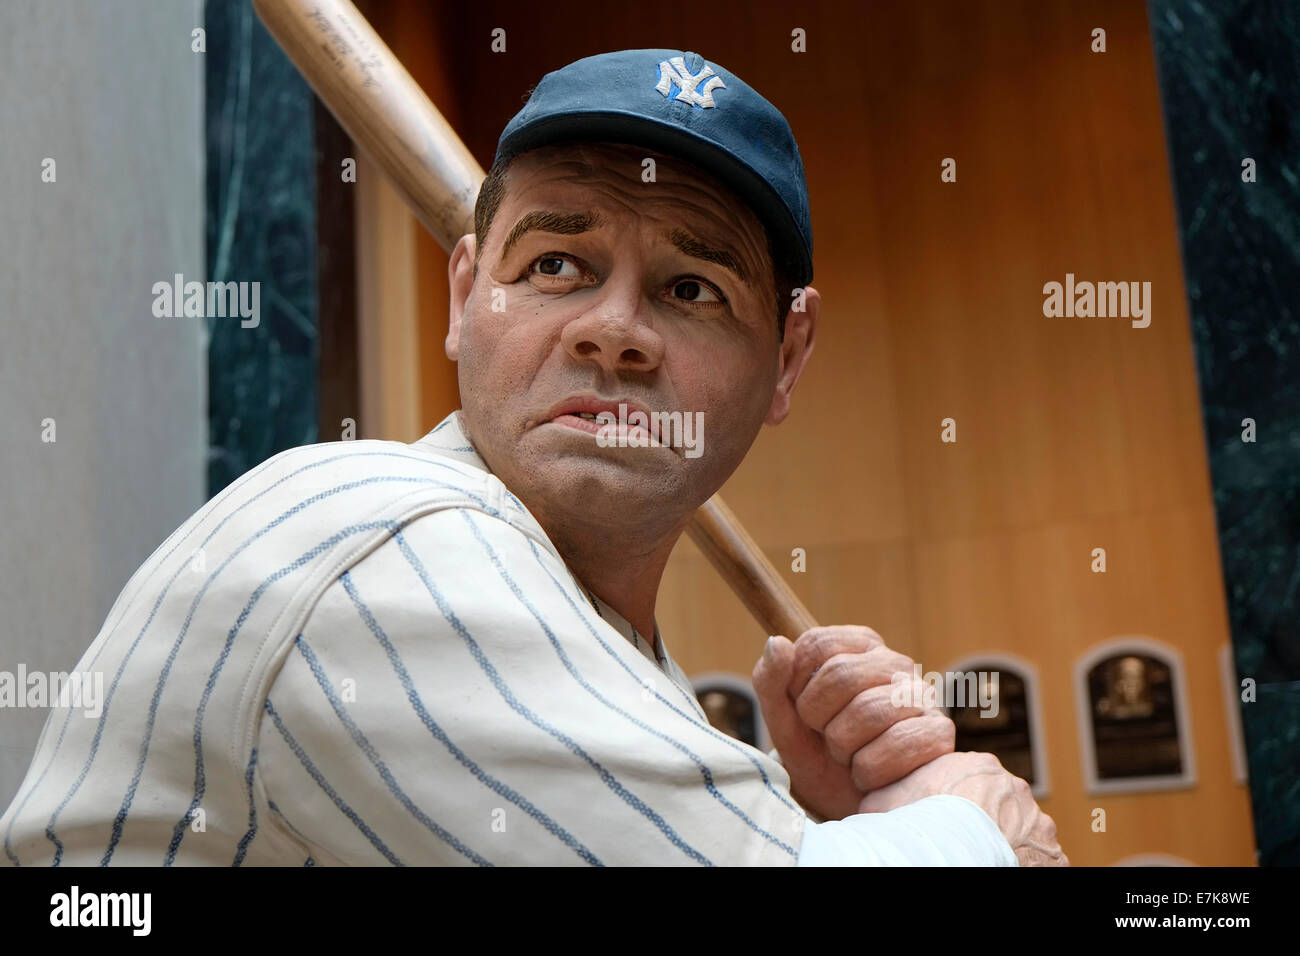 babe ruth National Baseball Hall of Fame Museum at Cooperstown New York Stock Photo